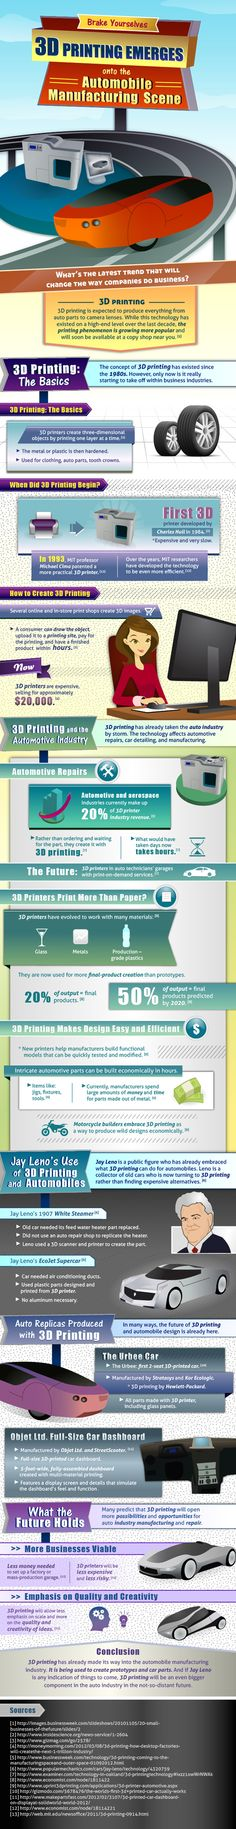 How 3D printing will rule the auto manufacturing scene [infographic]